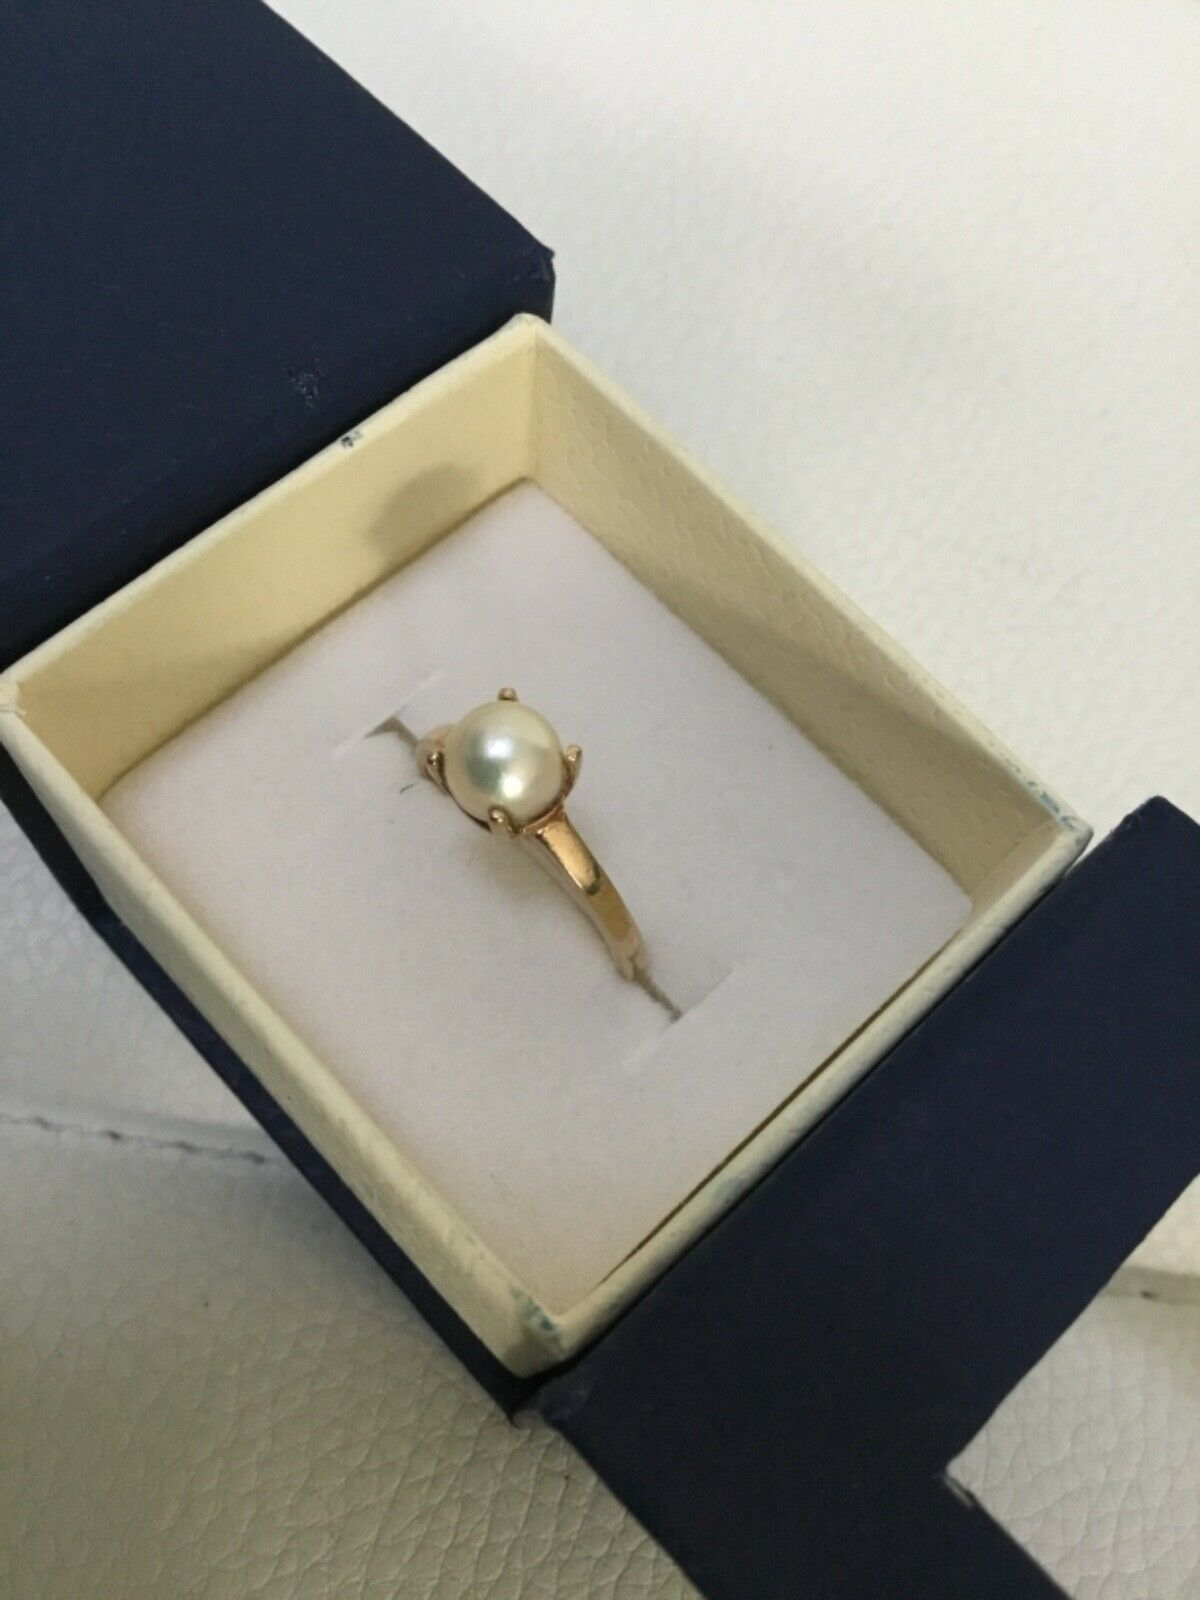 Vintage 10k gold and pearl - image 4